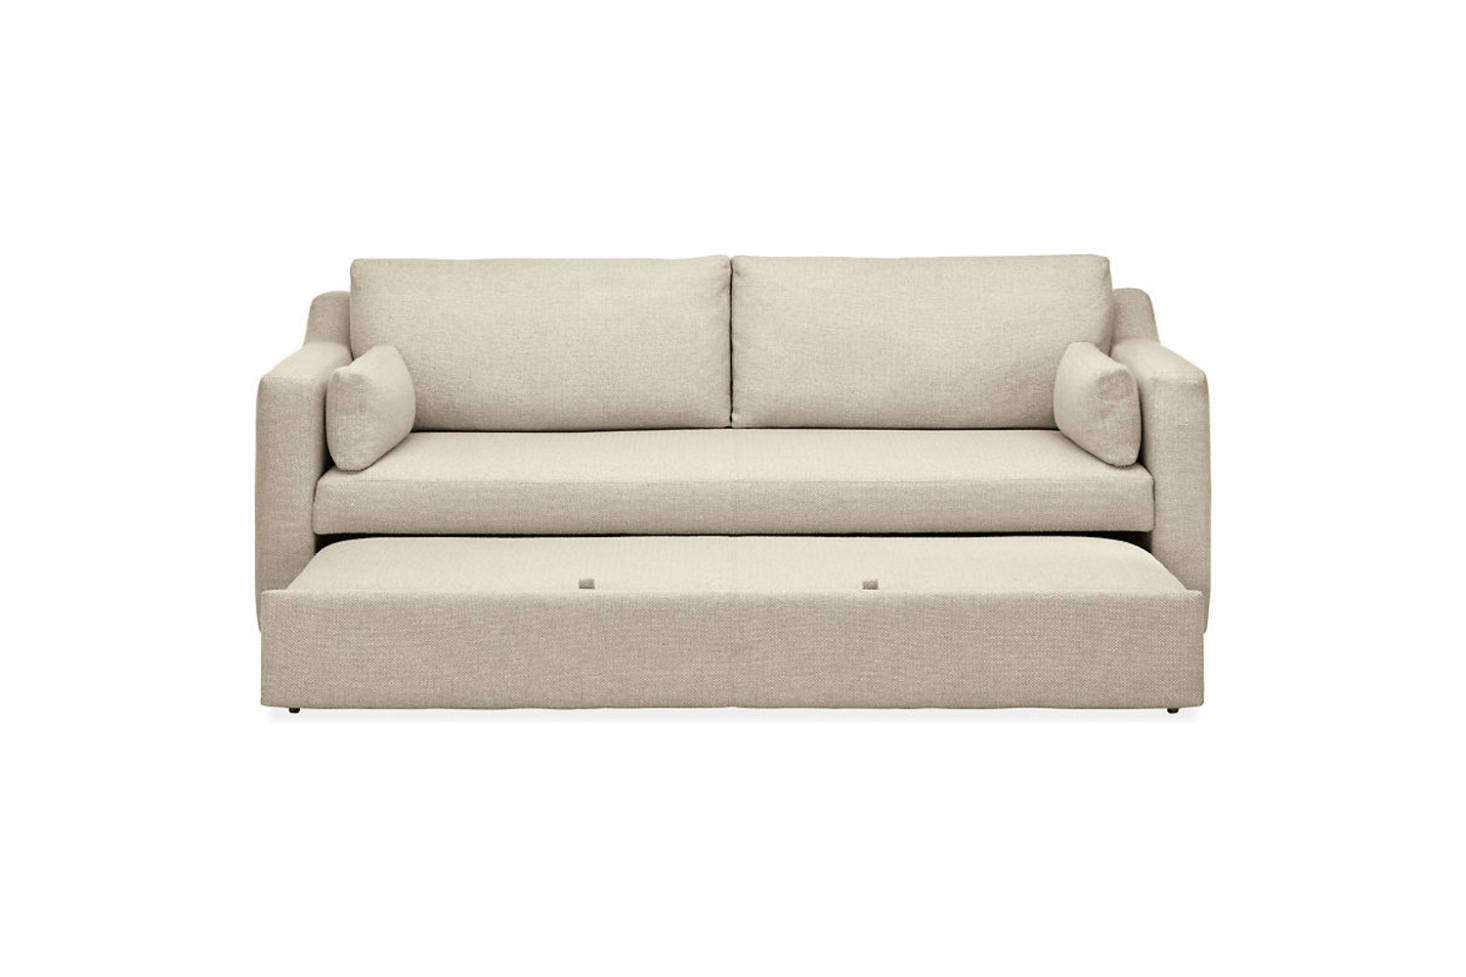 La Maison Du Futon 10 Easy Pieces Good Looking Sleeper Sofas Remodelista